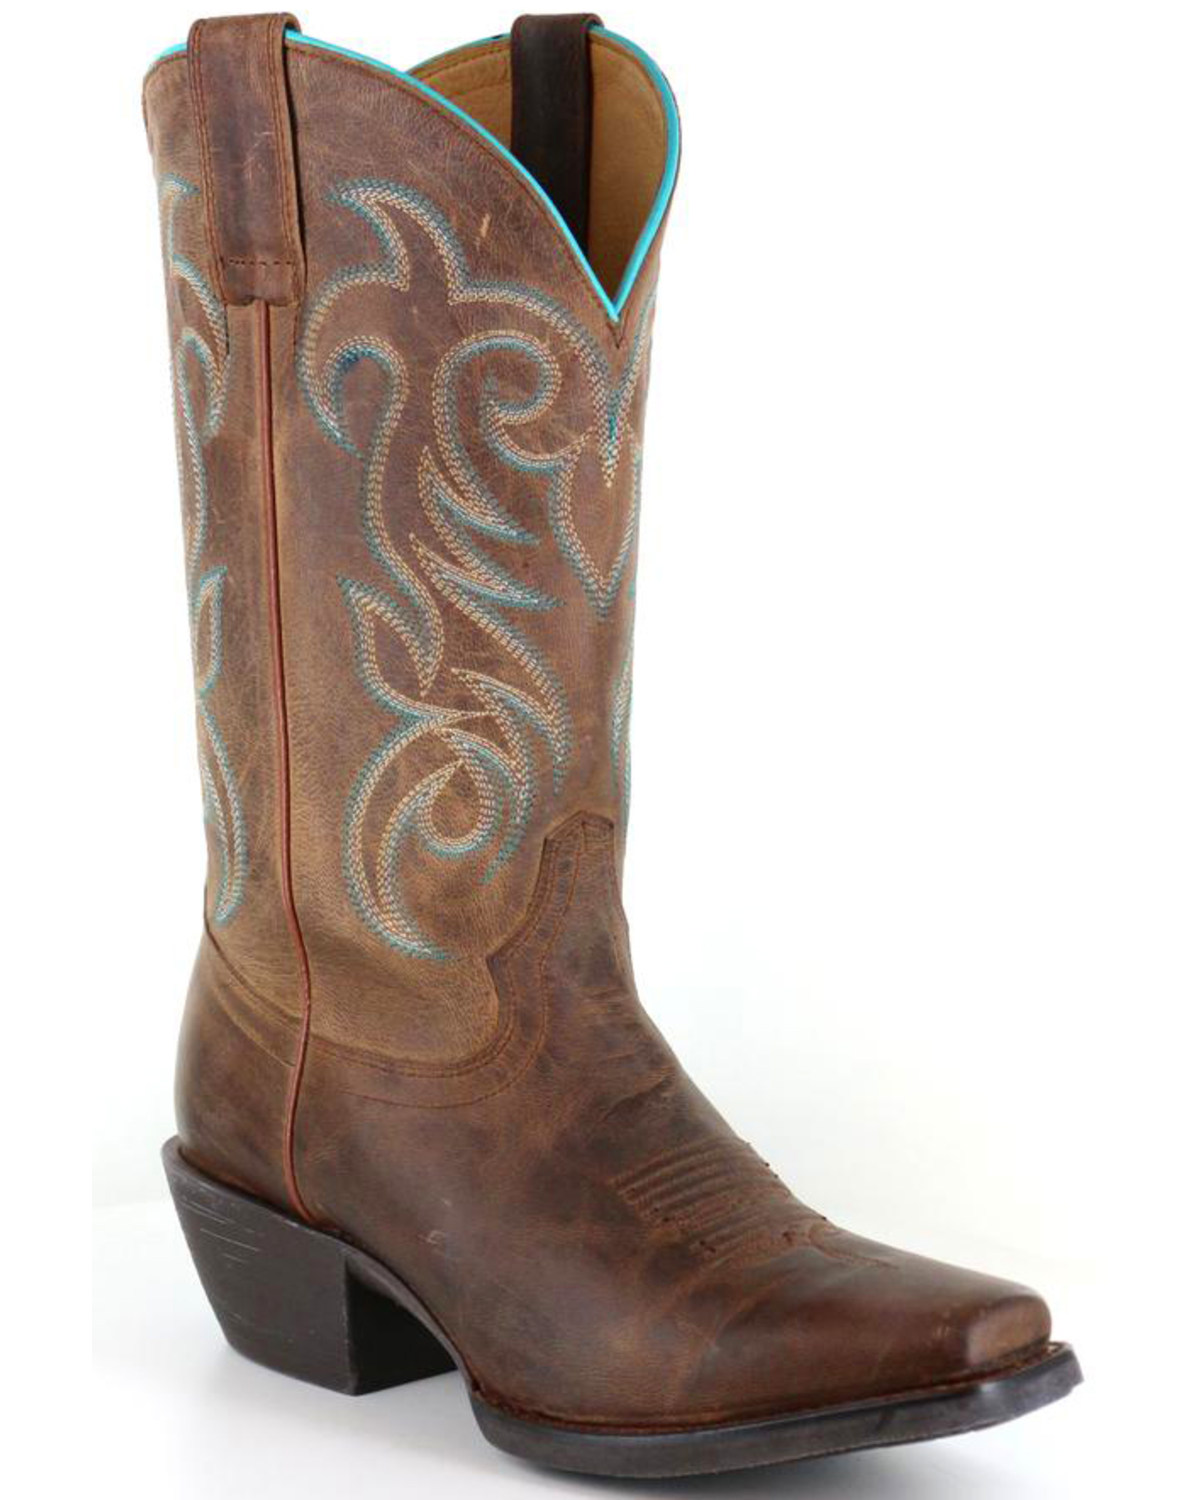 824ba7af6d9 Shyanne Women's Xero Gravity Embroidered Performance Boots - Square Toe